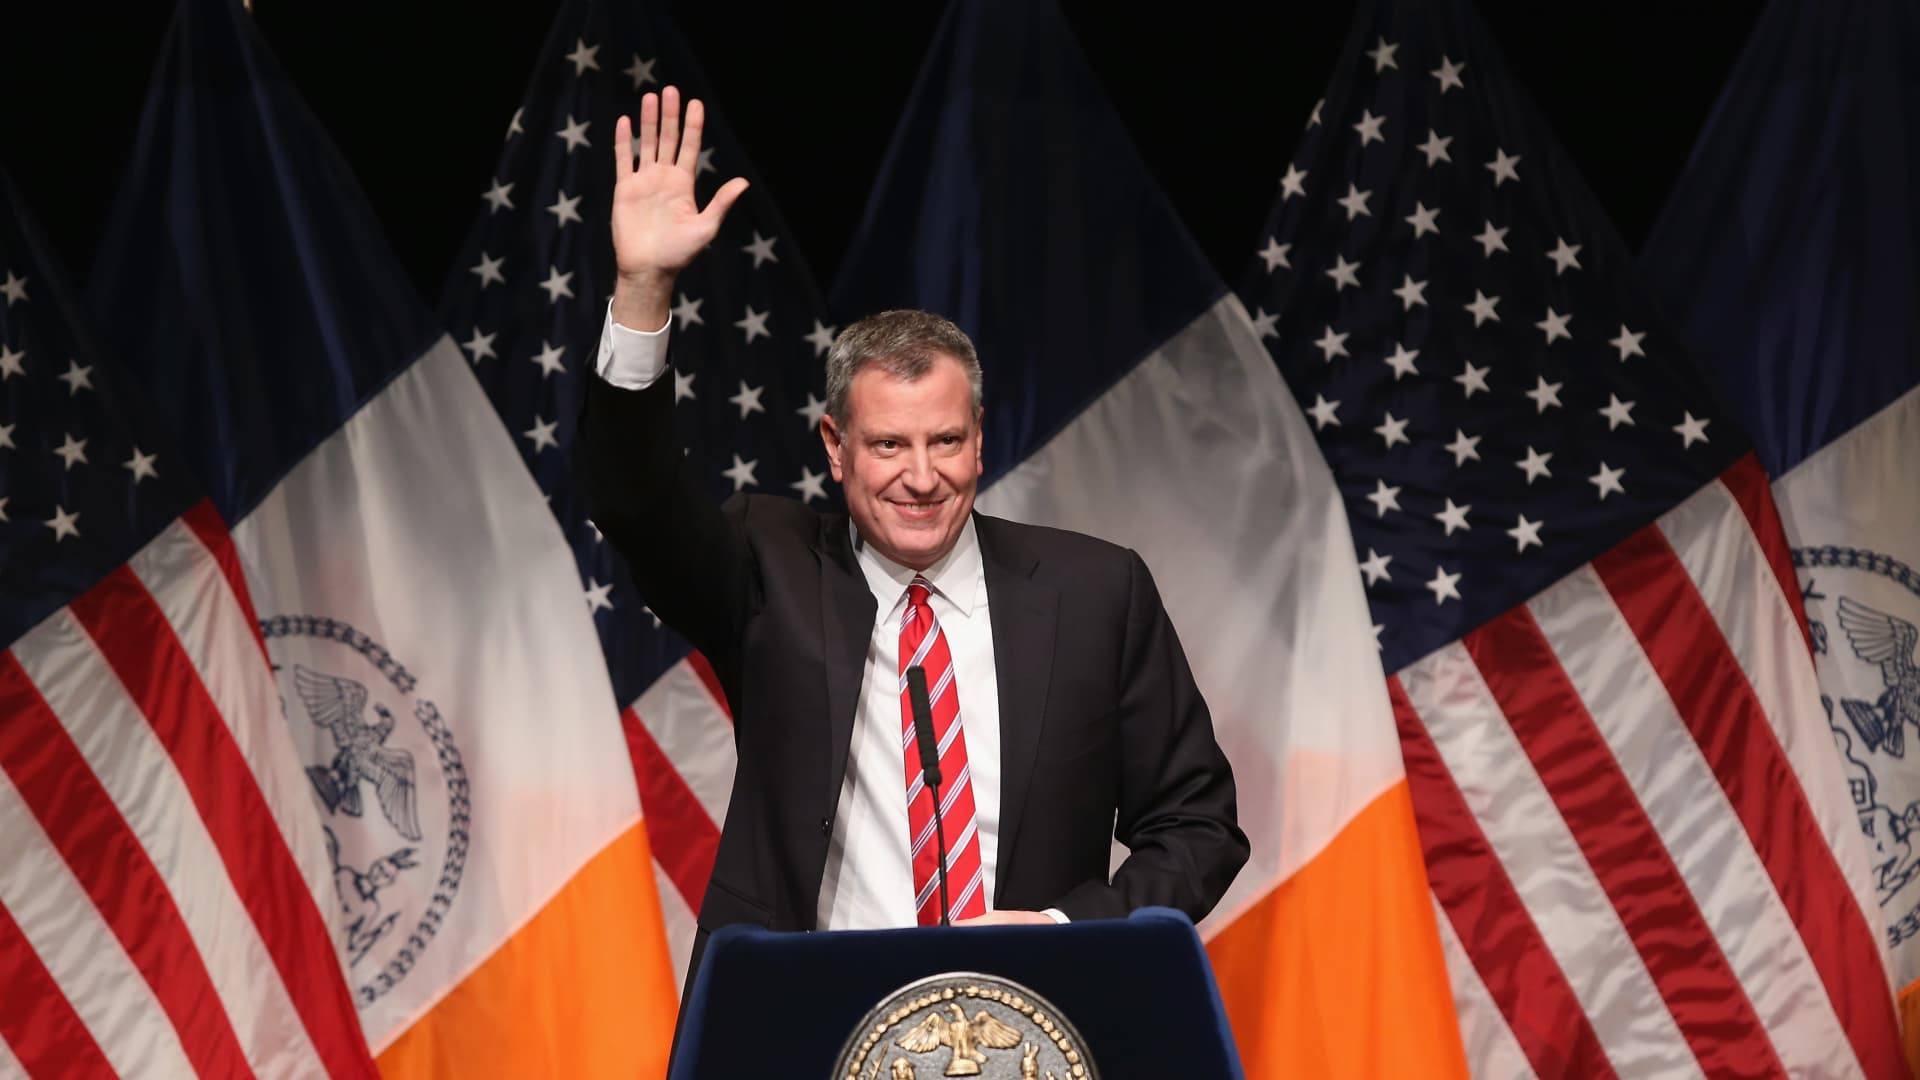 New York City Mayor Bill de Blasio waves as he gives the State of the City address at La Guardia Community College on February 10, 2014 in the Long Island City section of the Queens borough of New York City.